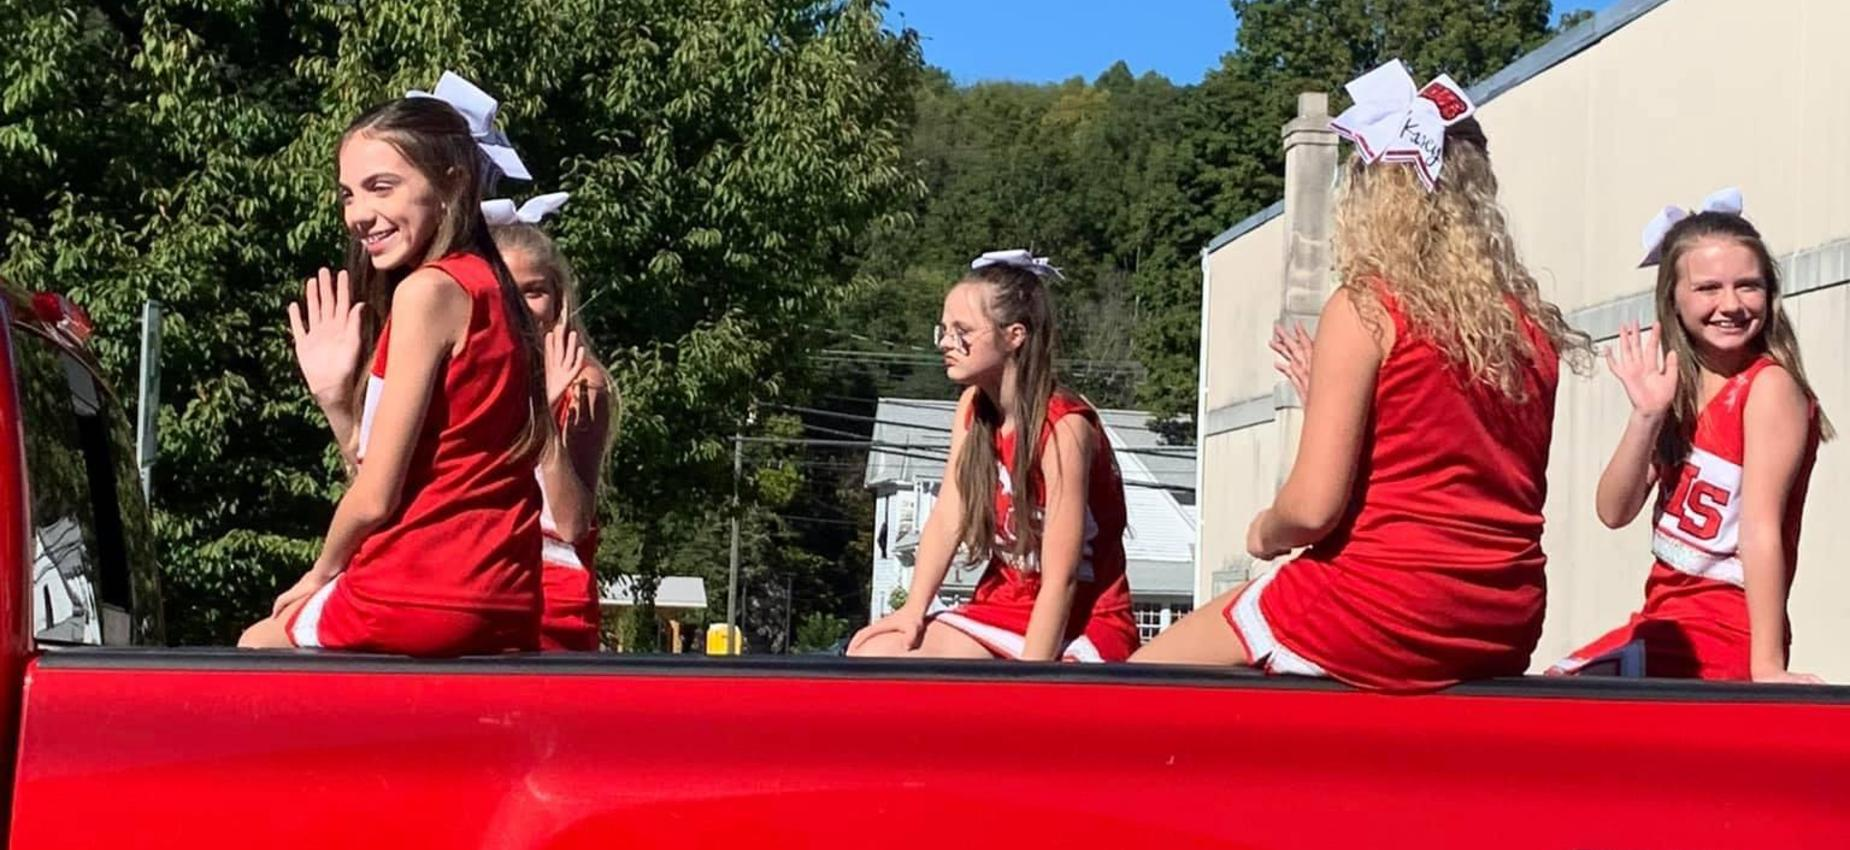 A group of cheerleaders ride in the back of a truck.